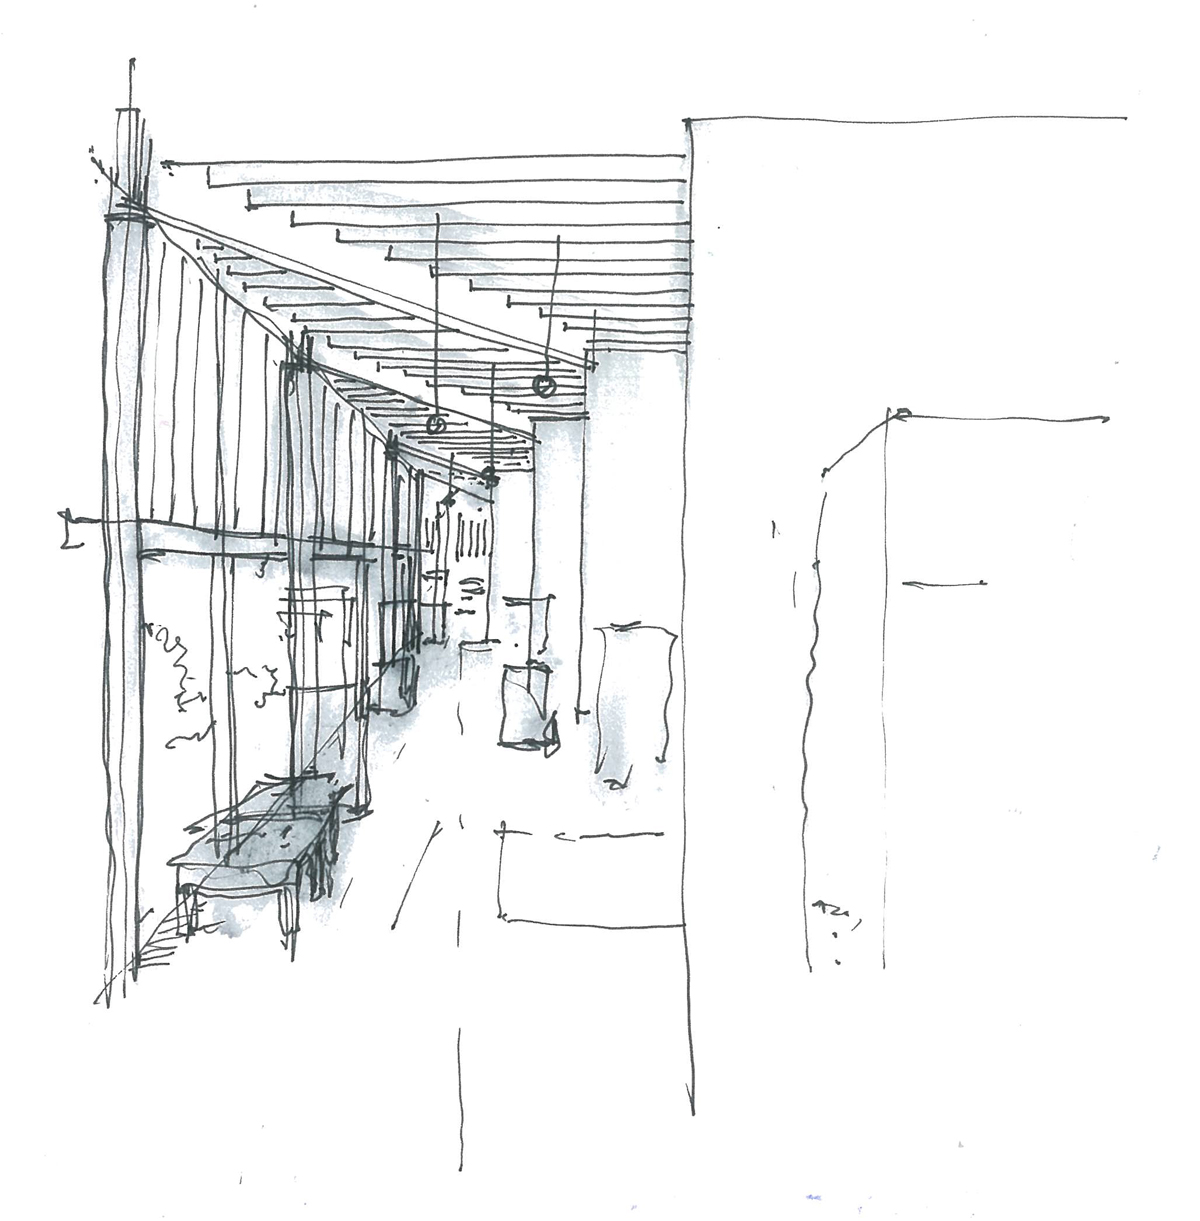 lsi-architects_burrell-museum_glasgow_sketch_01